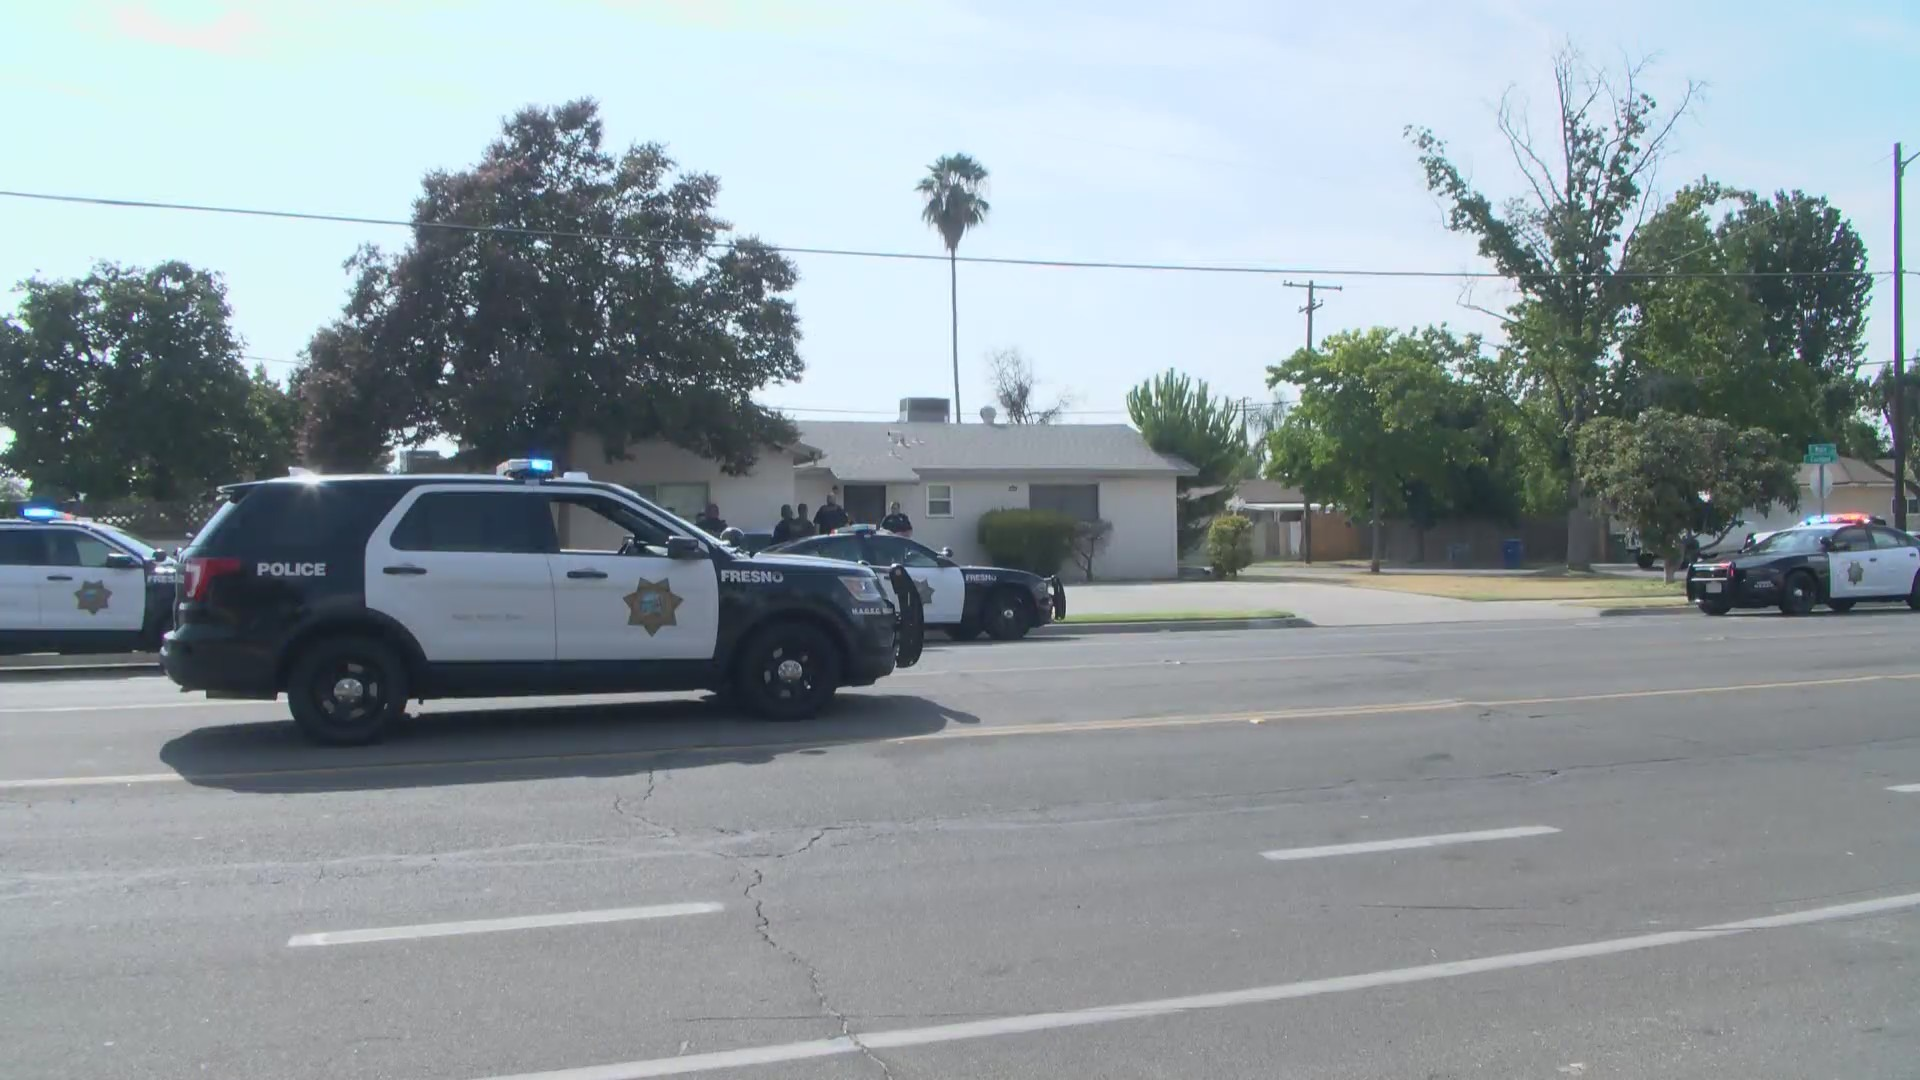 Man shot in central Fresno, investigation ongoing, police say